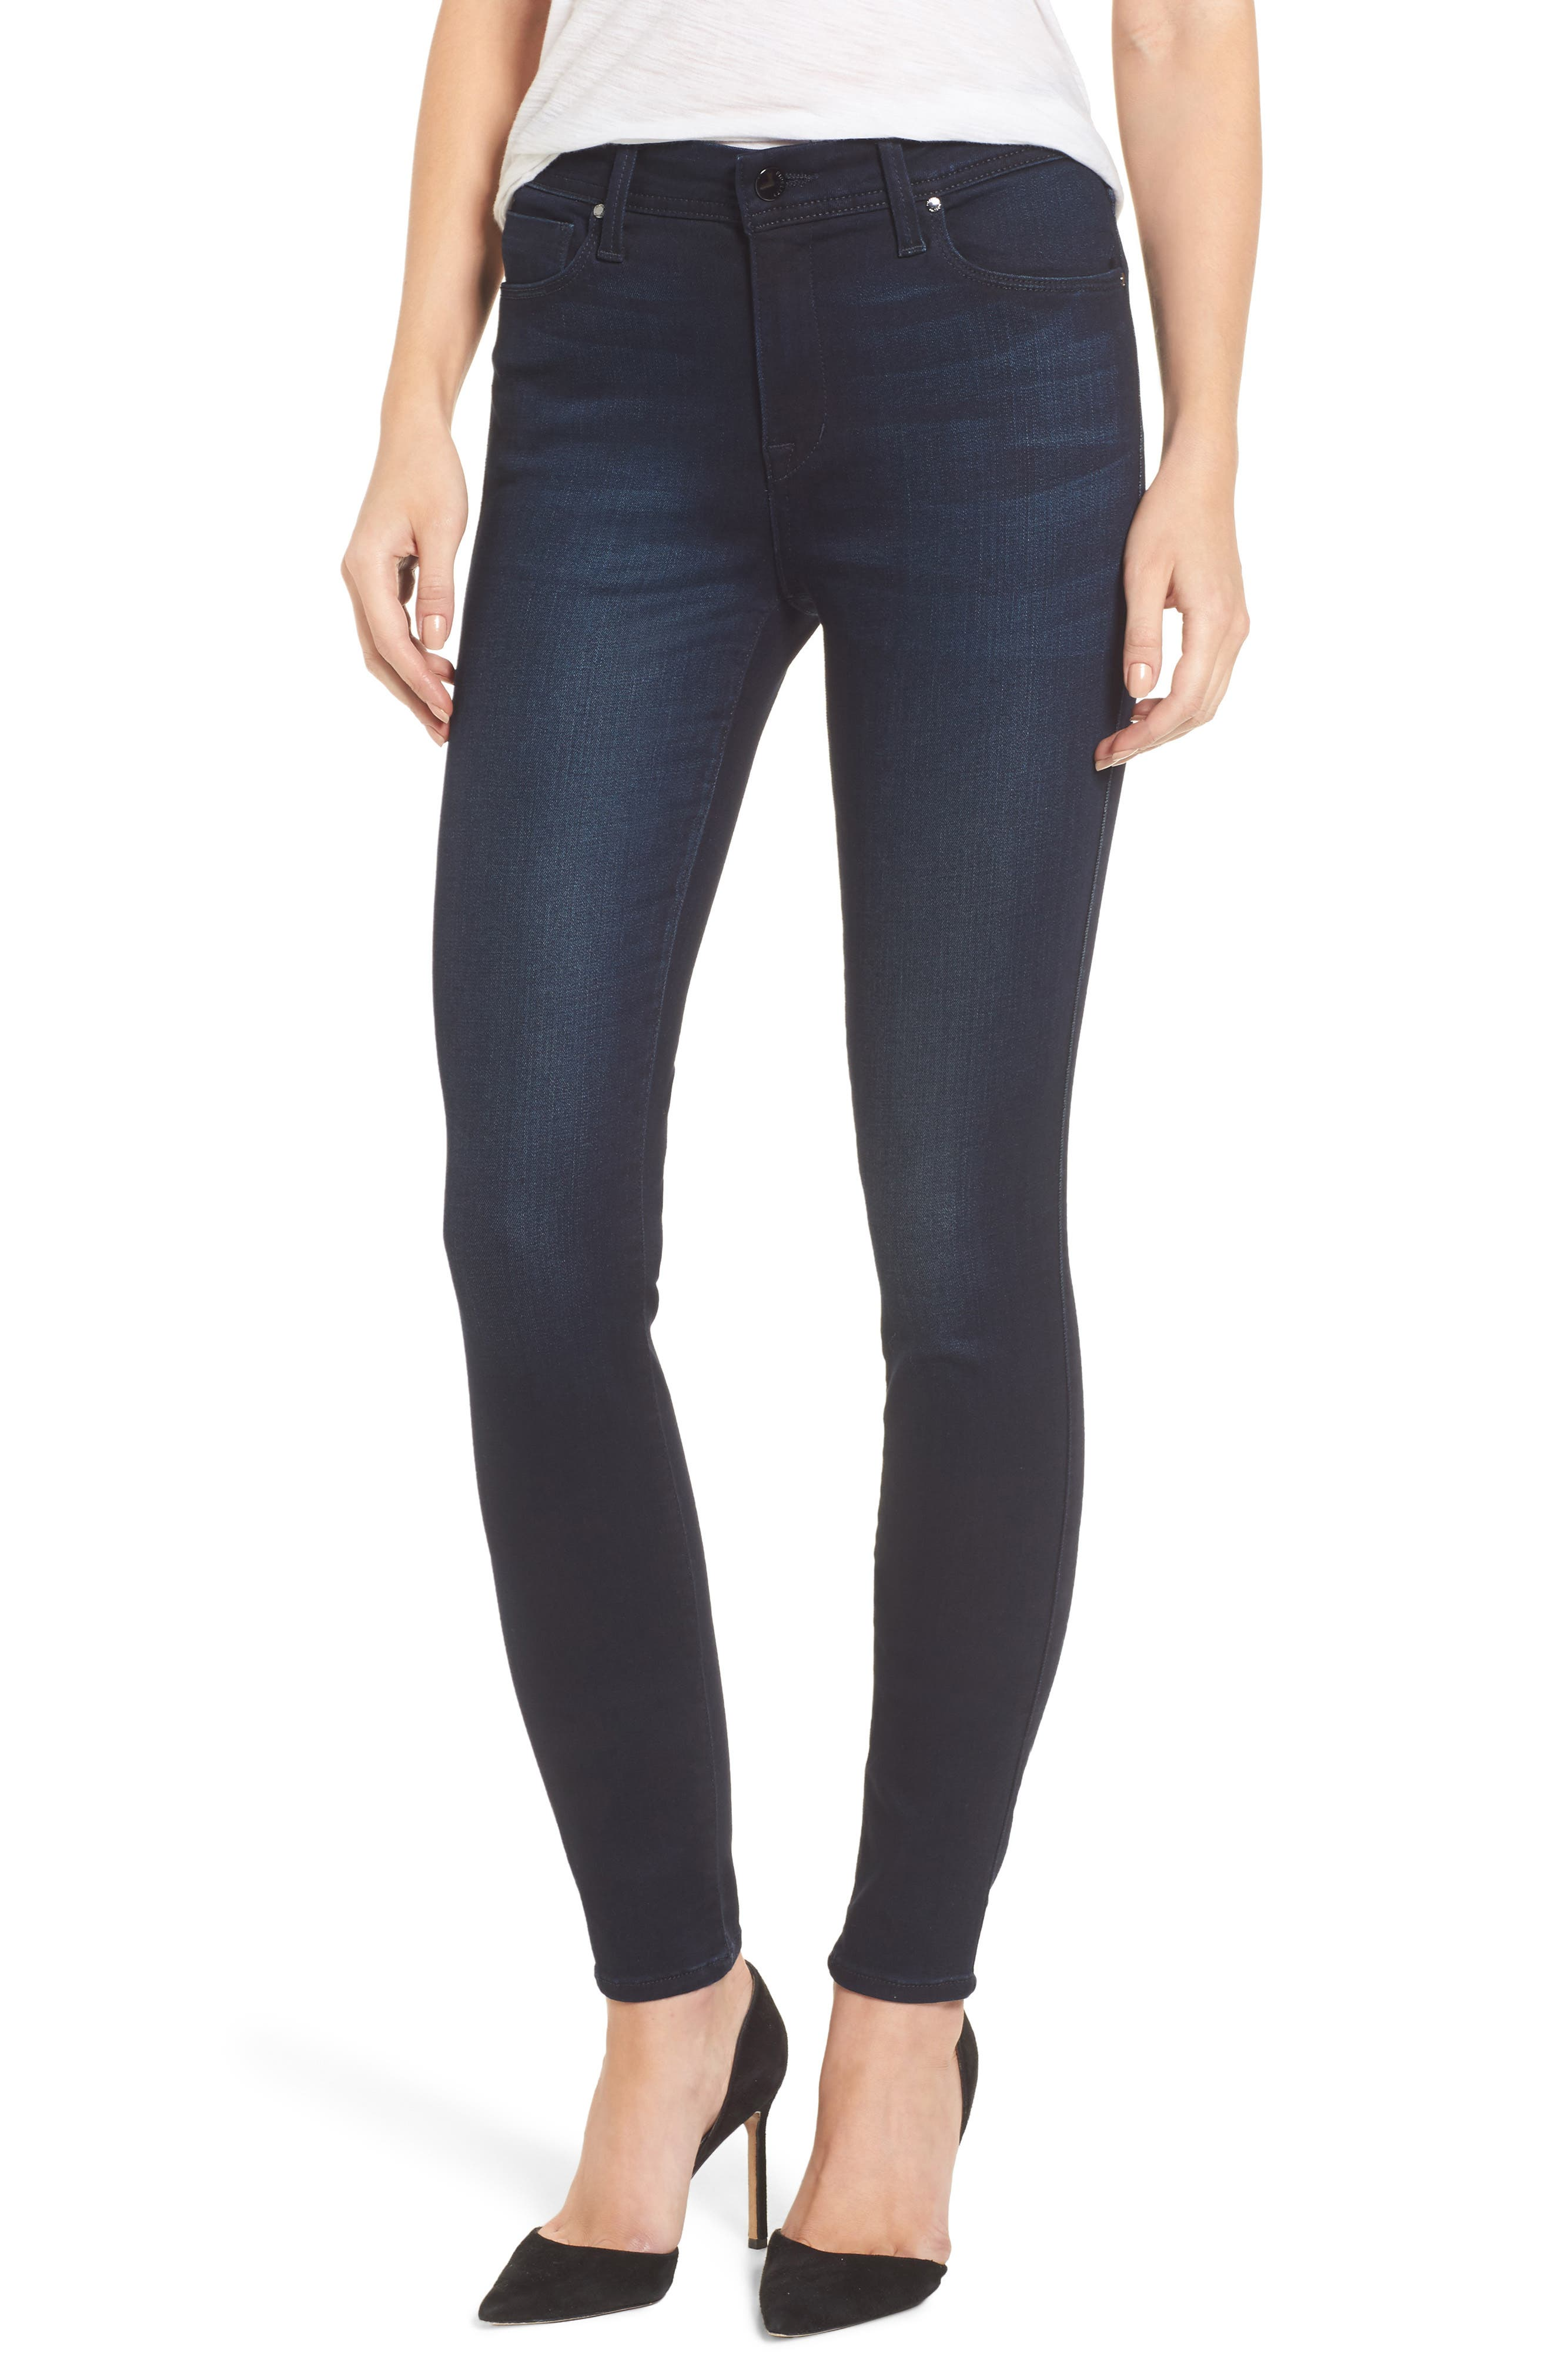 Fidelity Jeans Belvedere Skinny Jeans,                             Main thumbnail 1, color,                             400